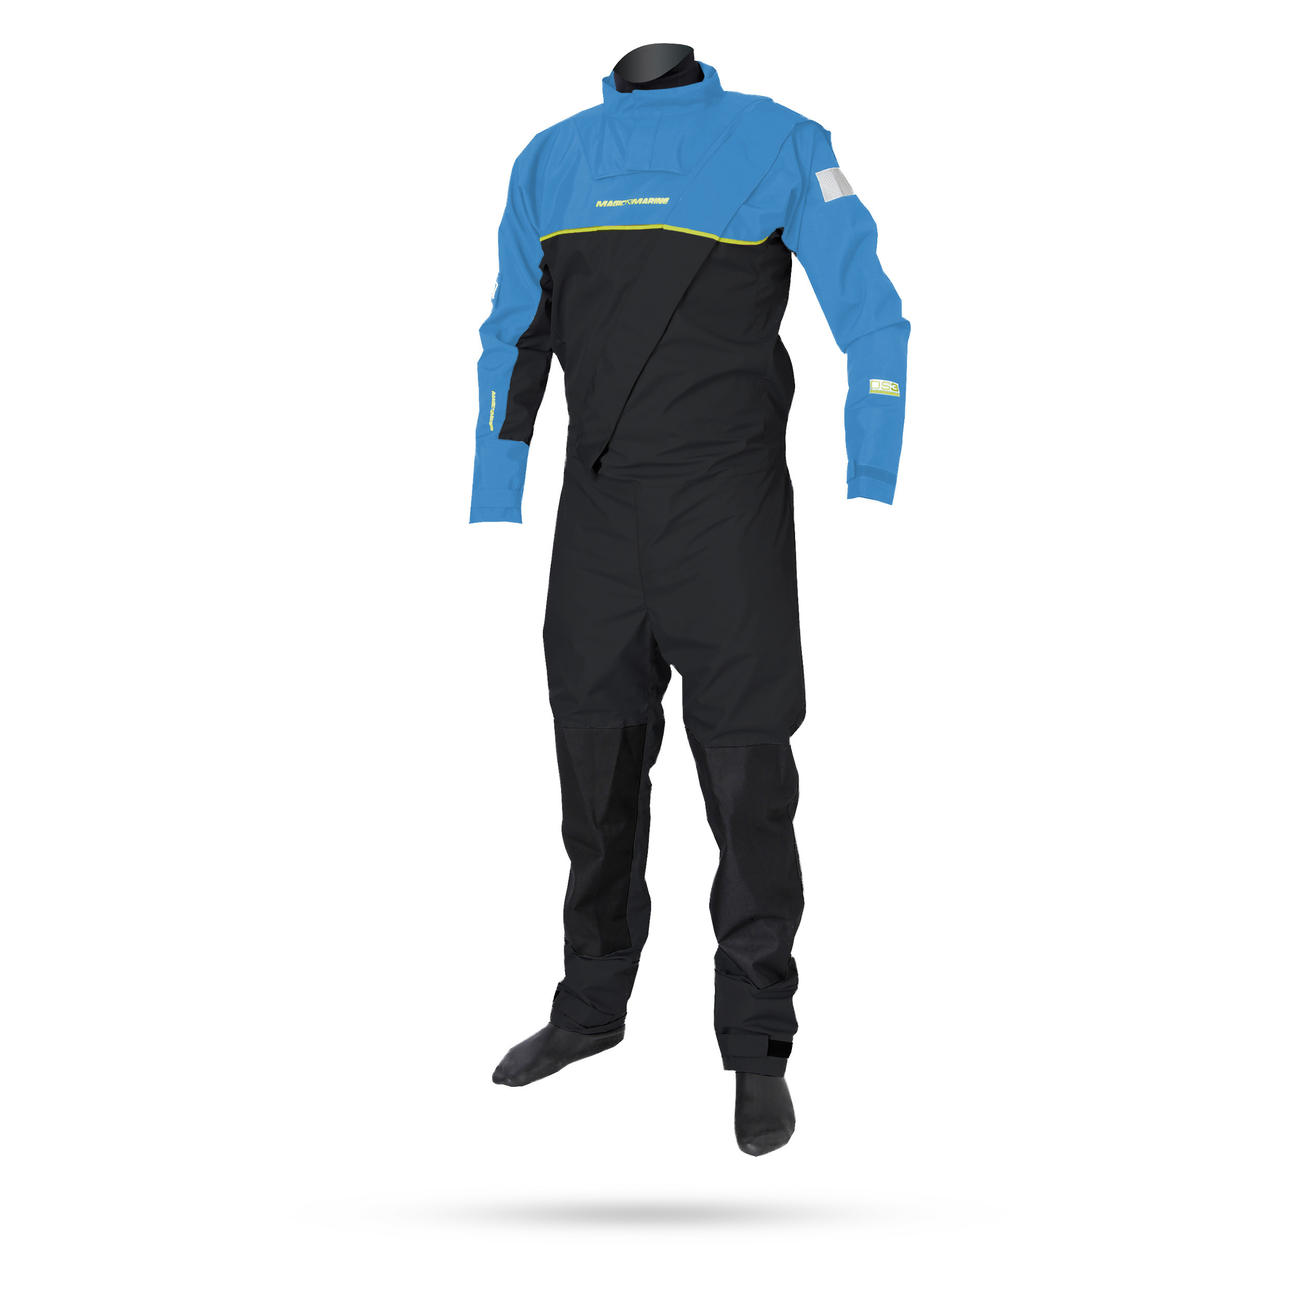 Regatta Breathable Drysuit with Socks (frontzip) シェルドライスーツ